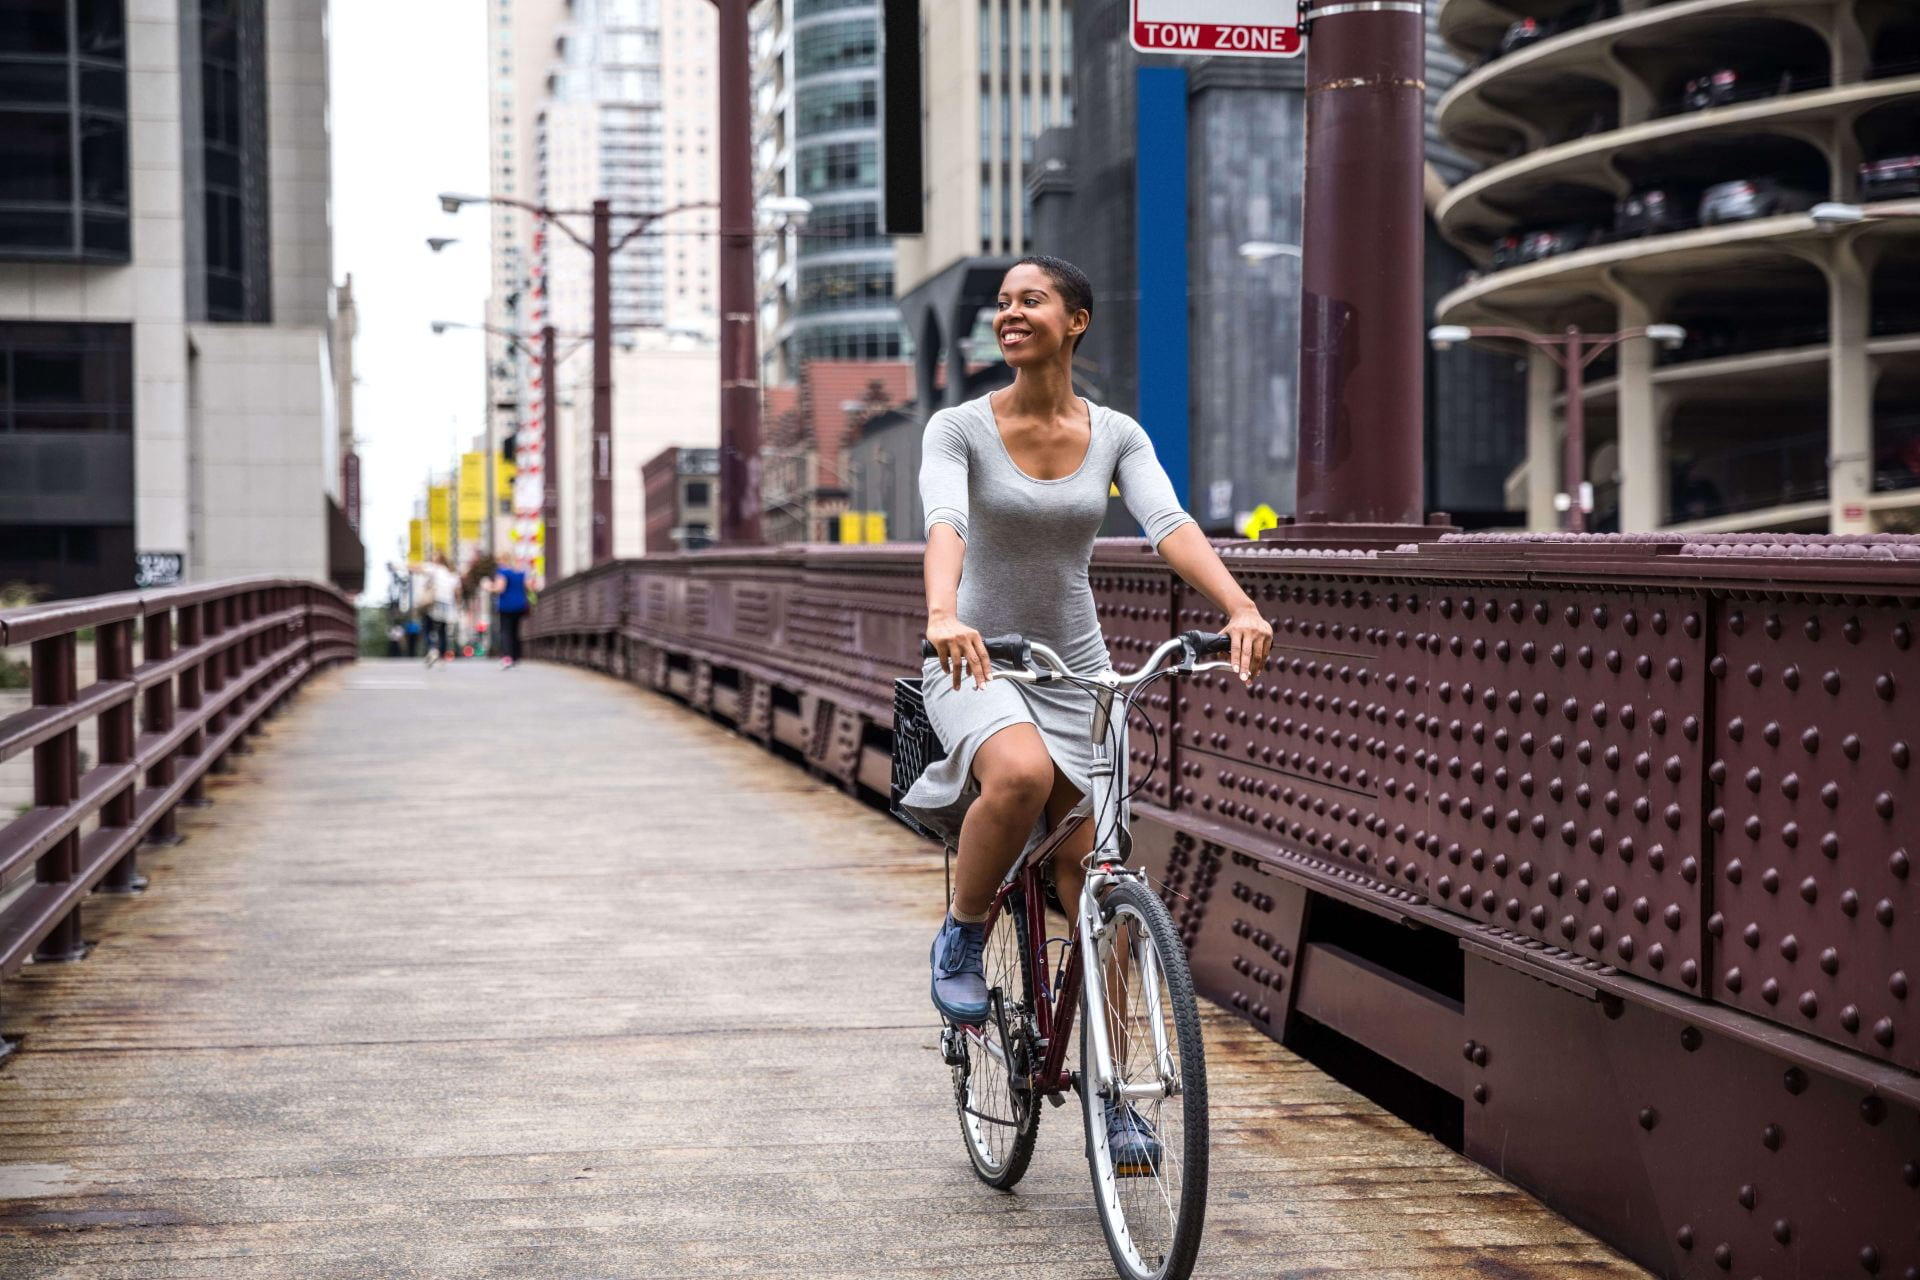 Smiling women on a bicycle